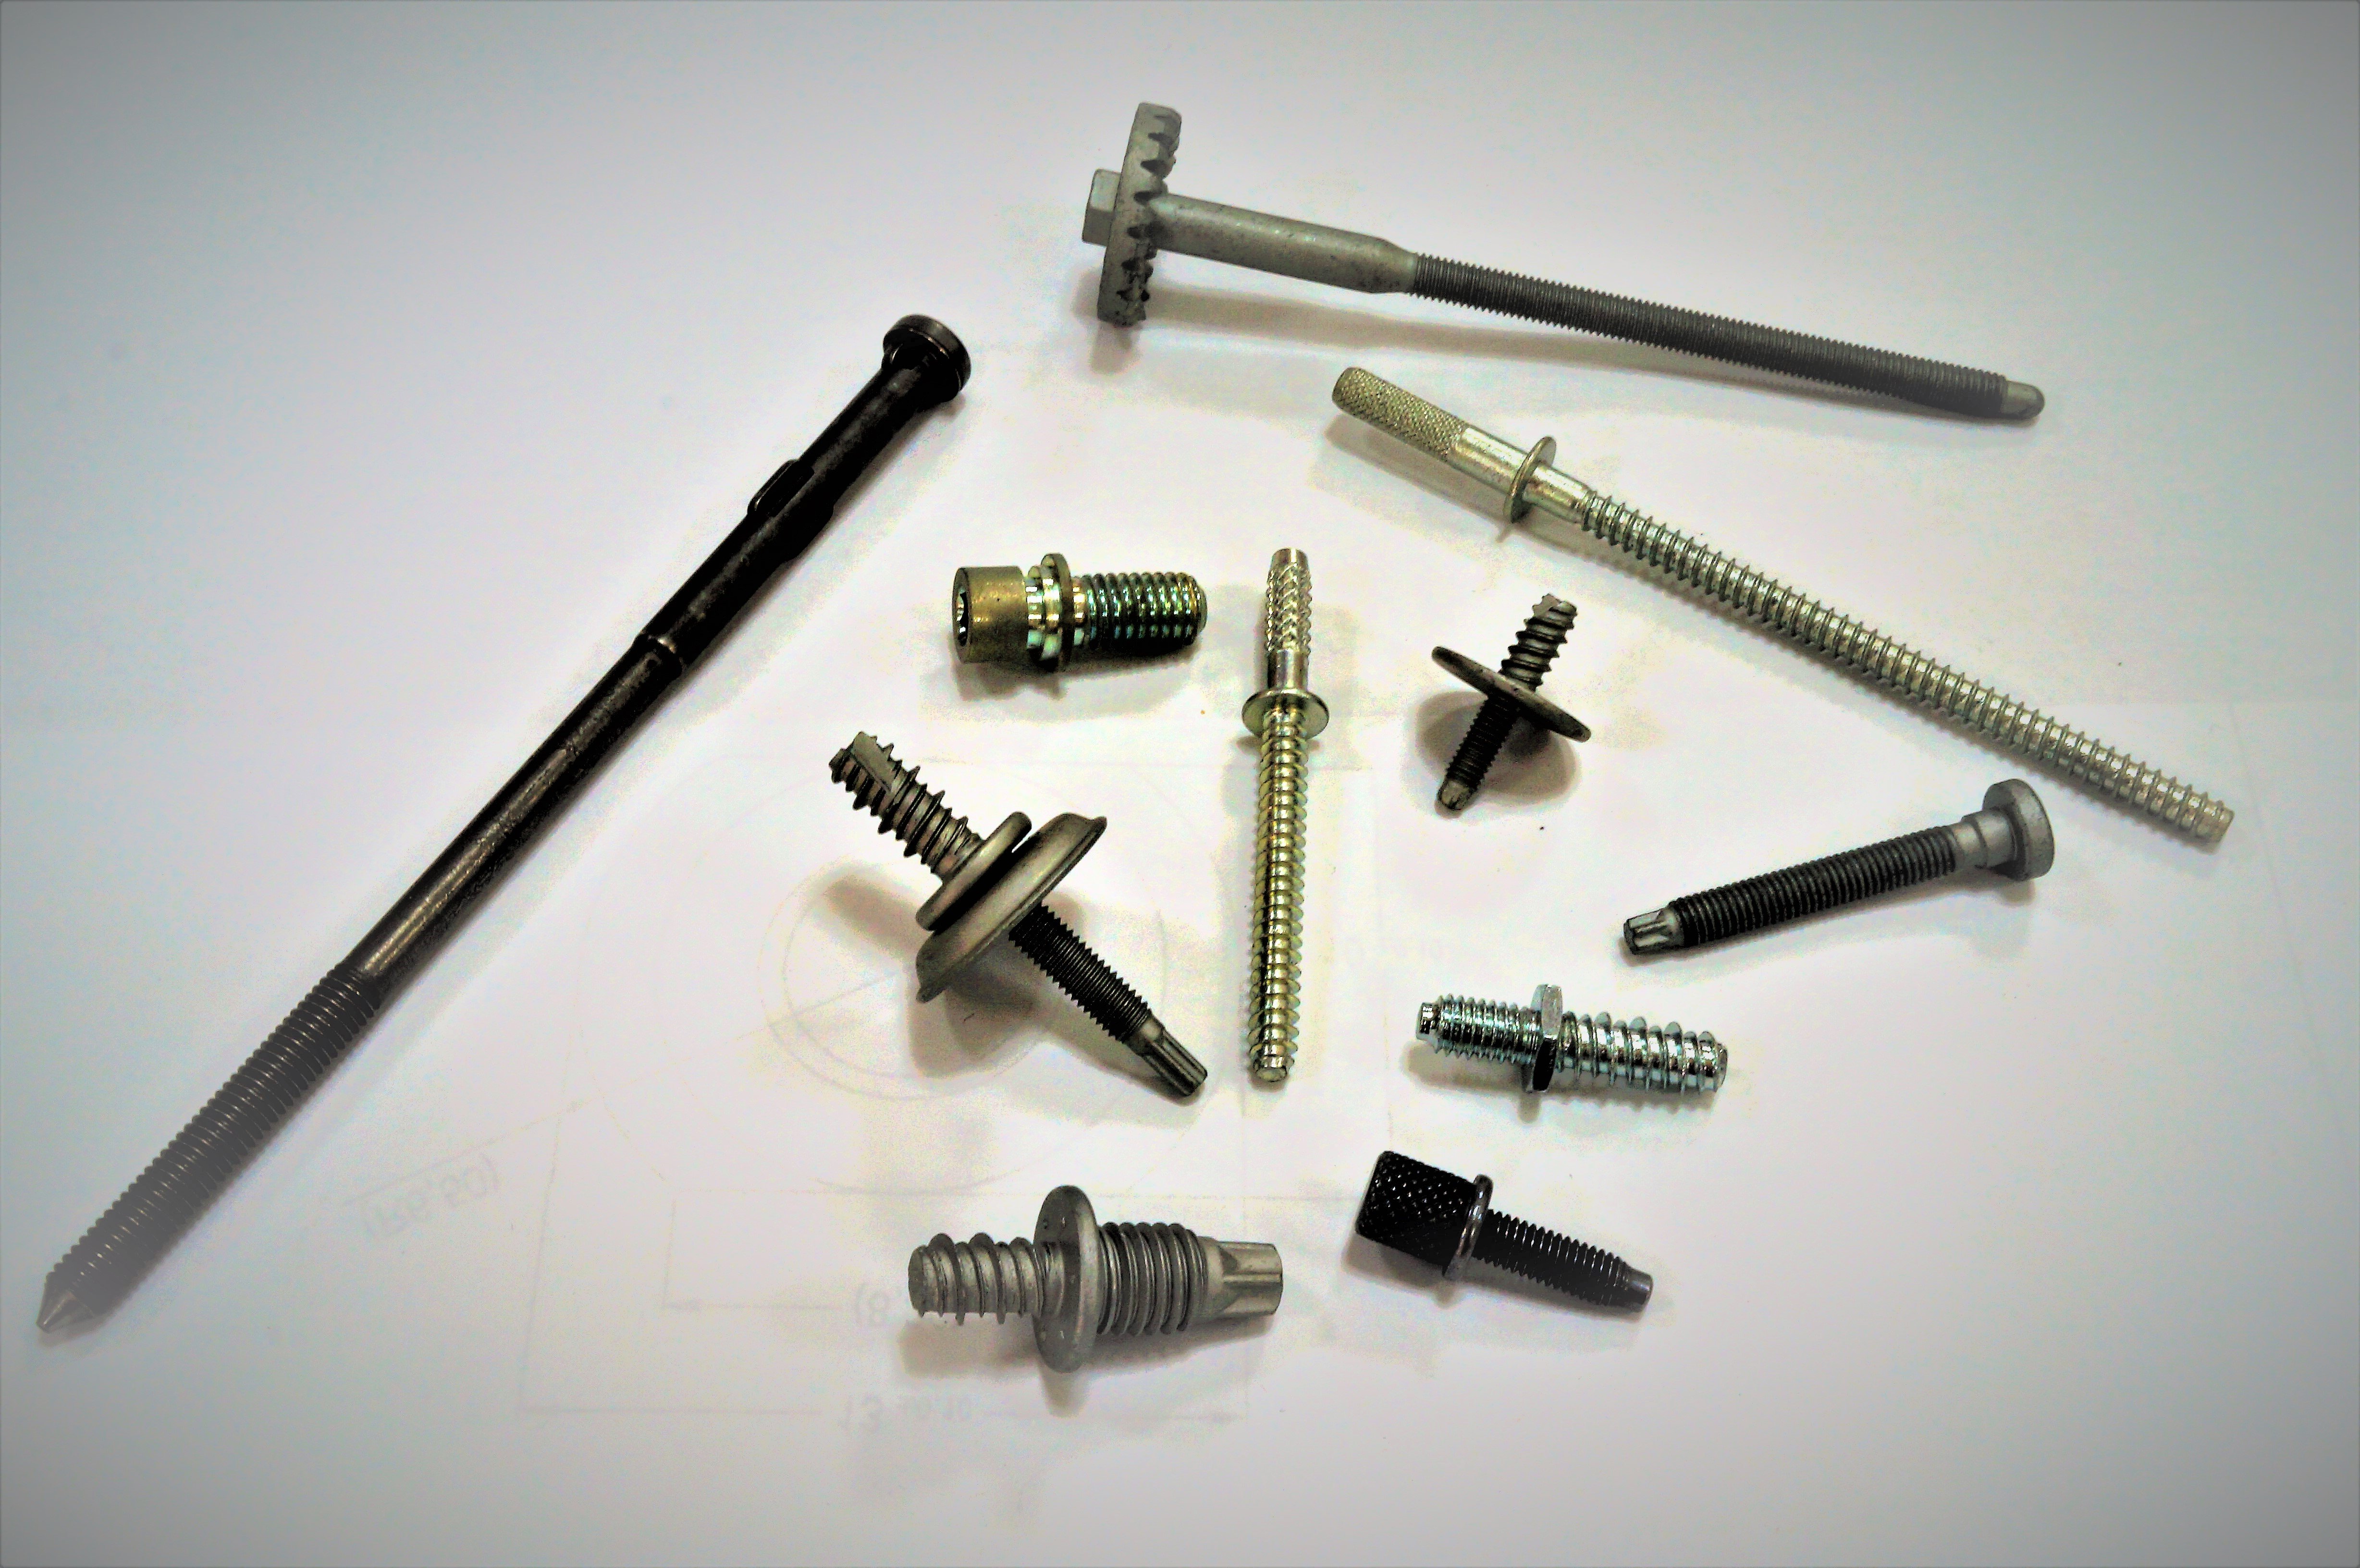 4x4 Pick Up Double End Screw for Vehicle Fastener made by Sunny Screw Industry 三能螺栓工業股份有限公司 - MatchSupplier.com